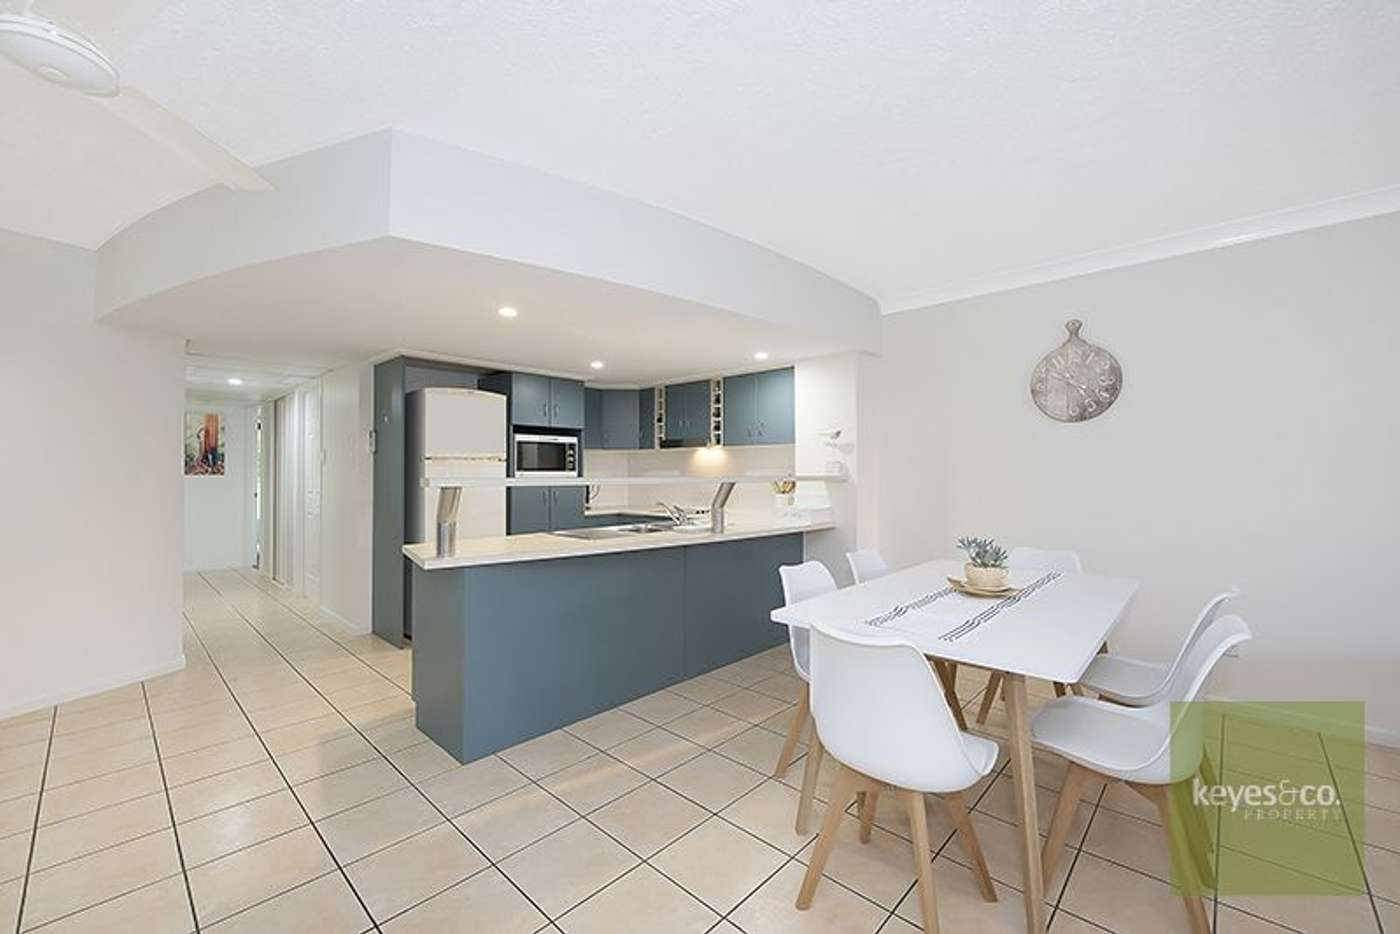 Main view of Homely apartment listing, 2/177-179 Mitchell Street, North Ward QLD 4810